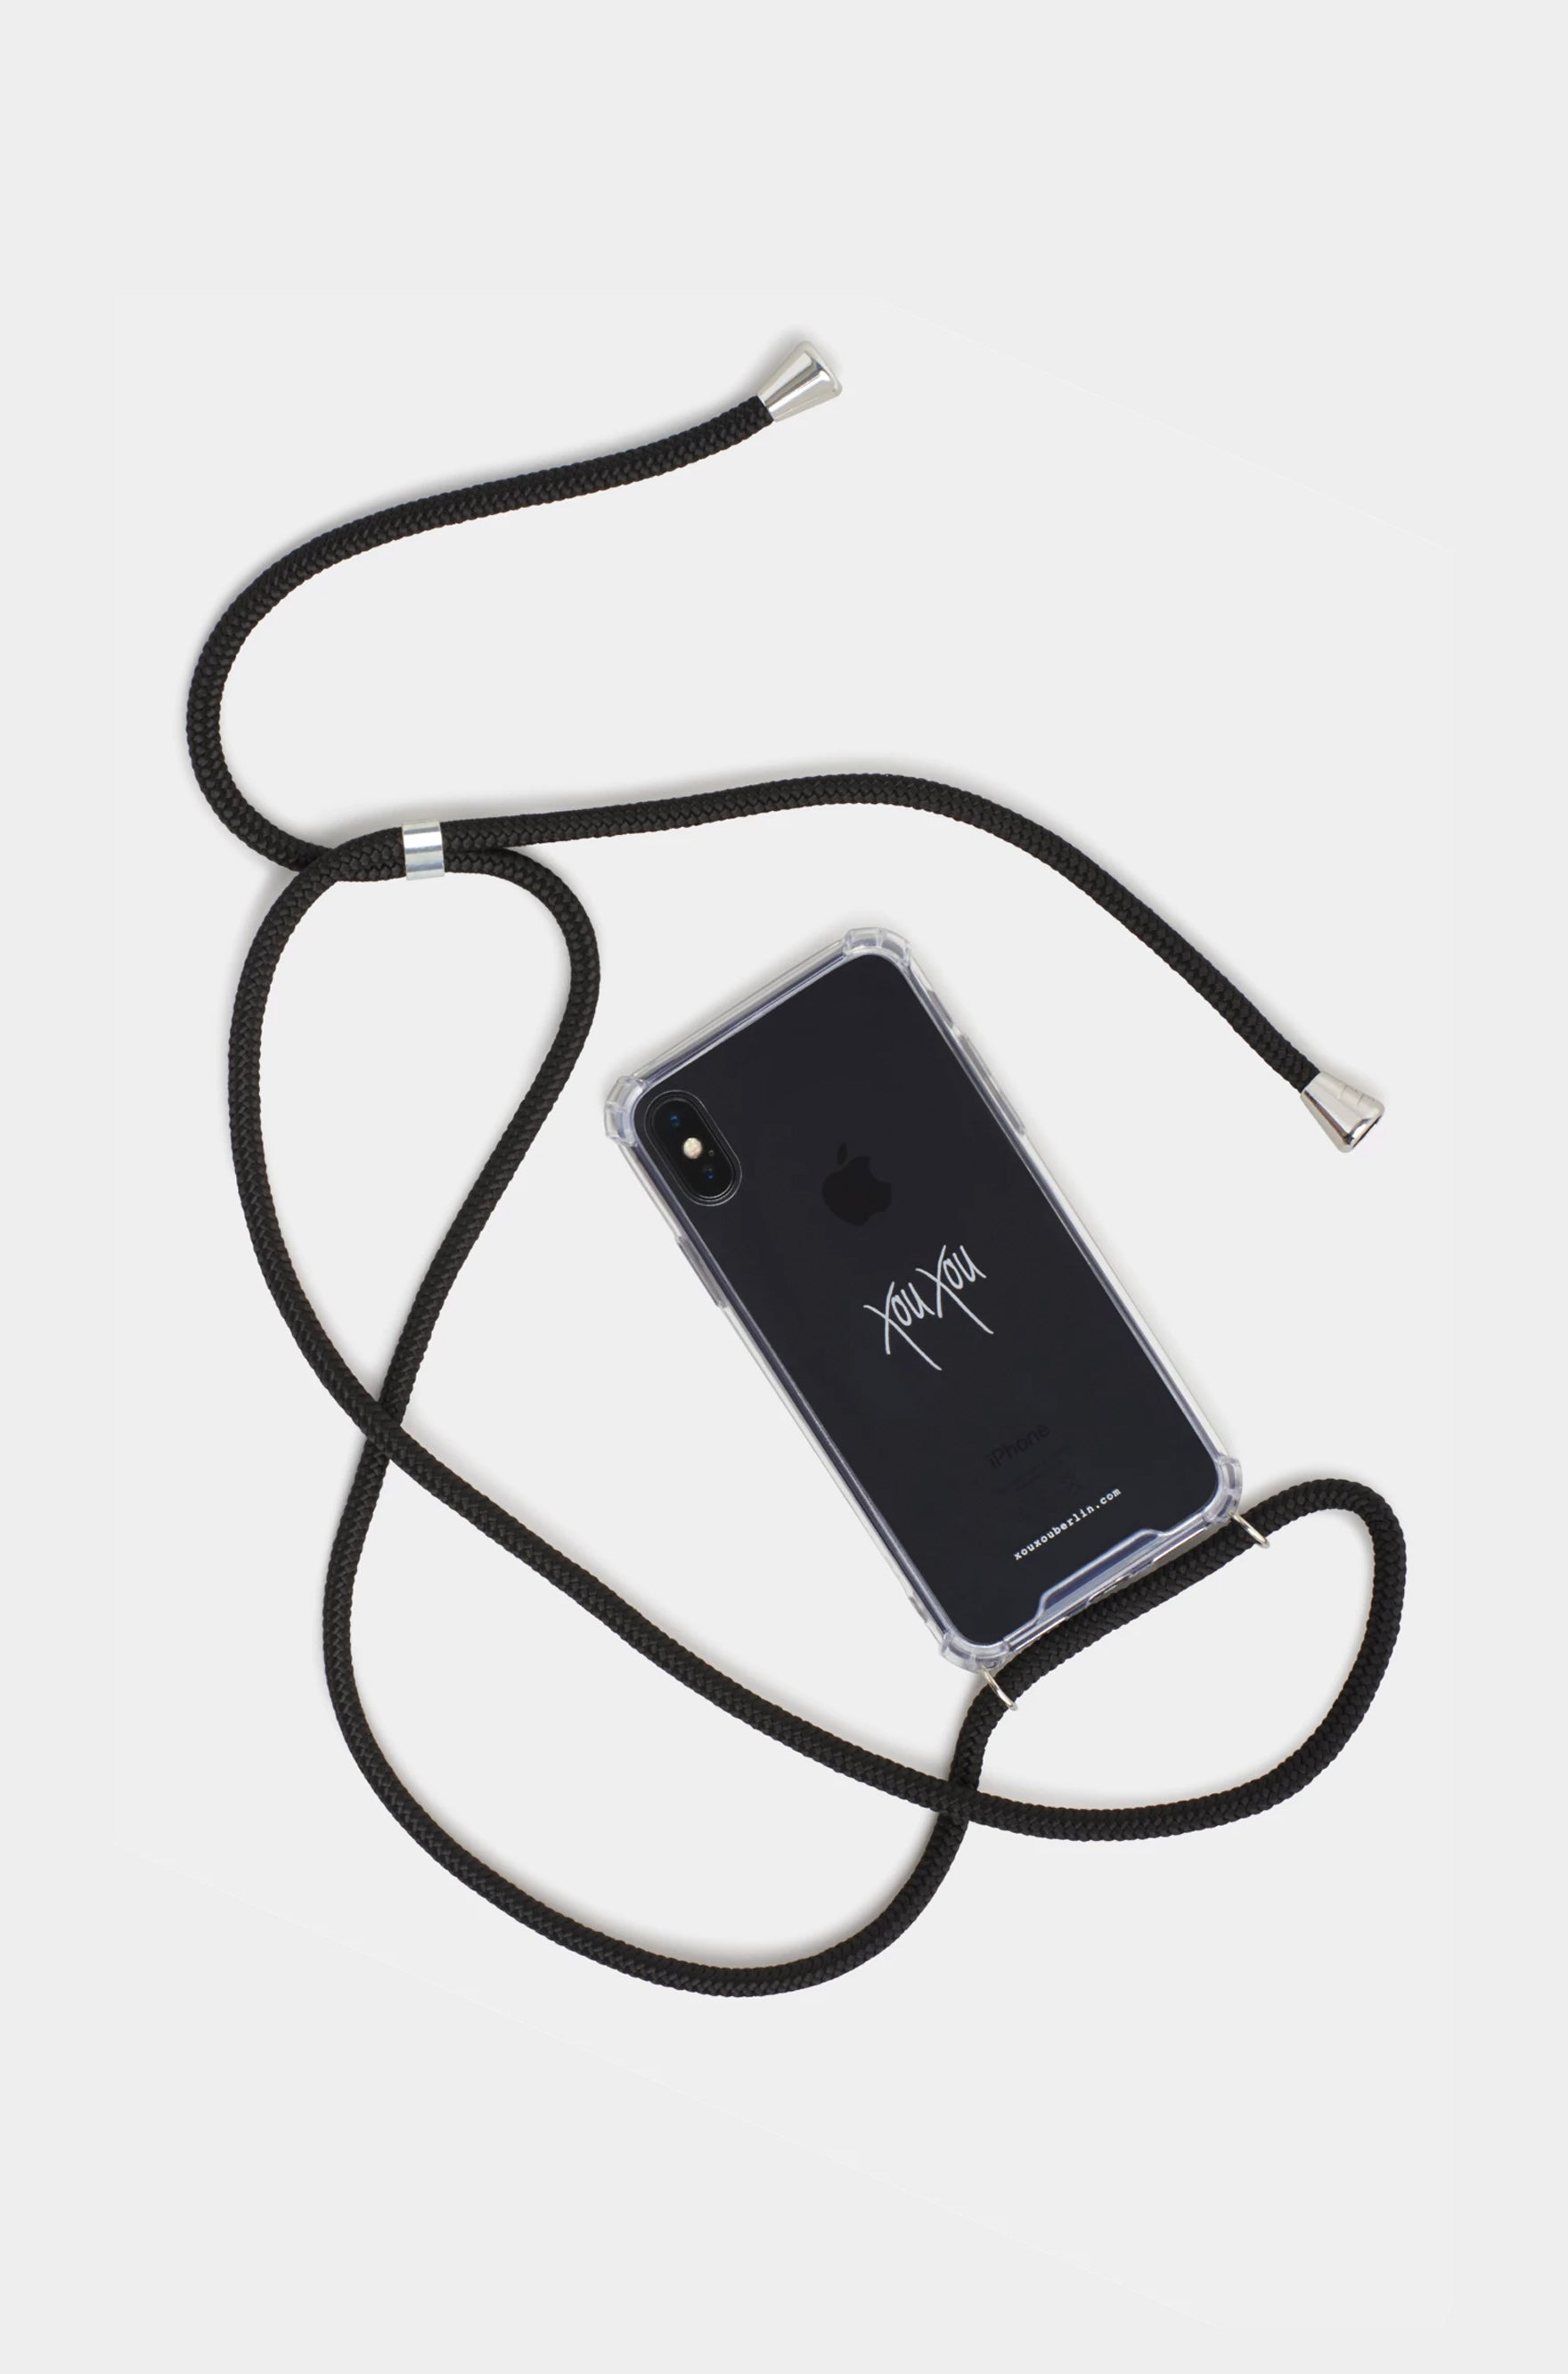 Xou Xou Smartphone Necklace For iPhones - Black